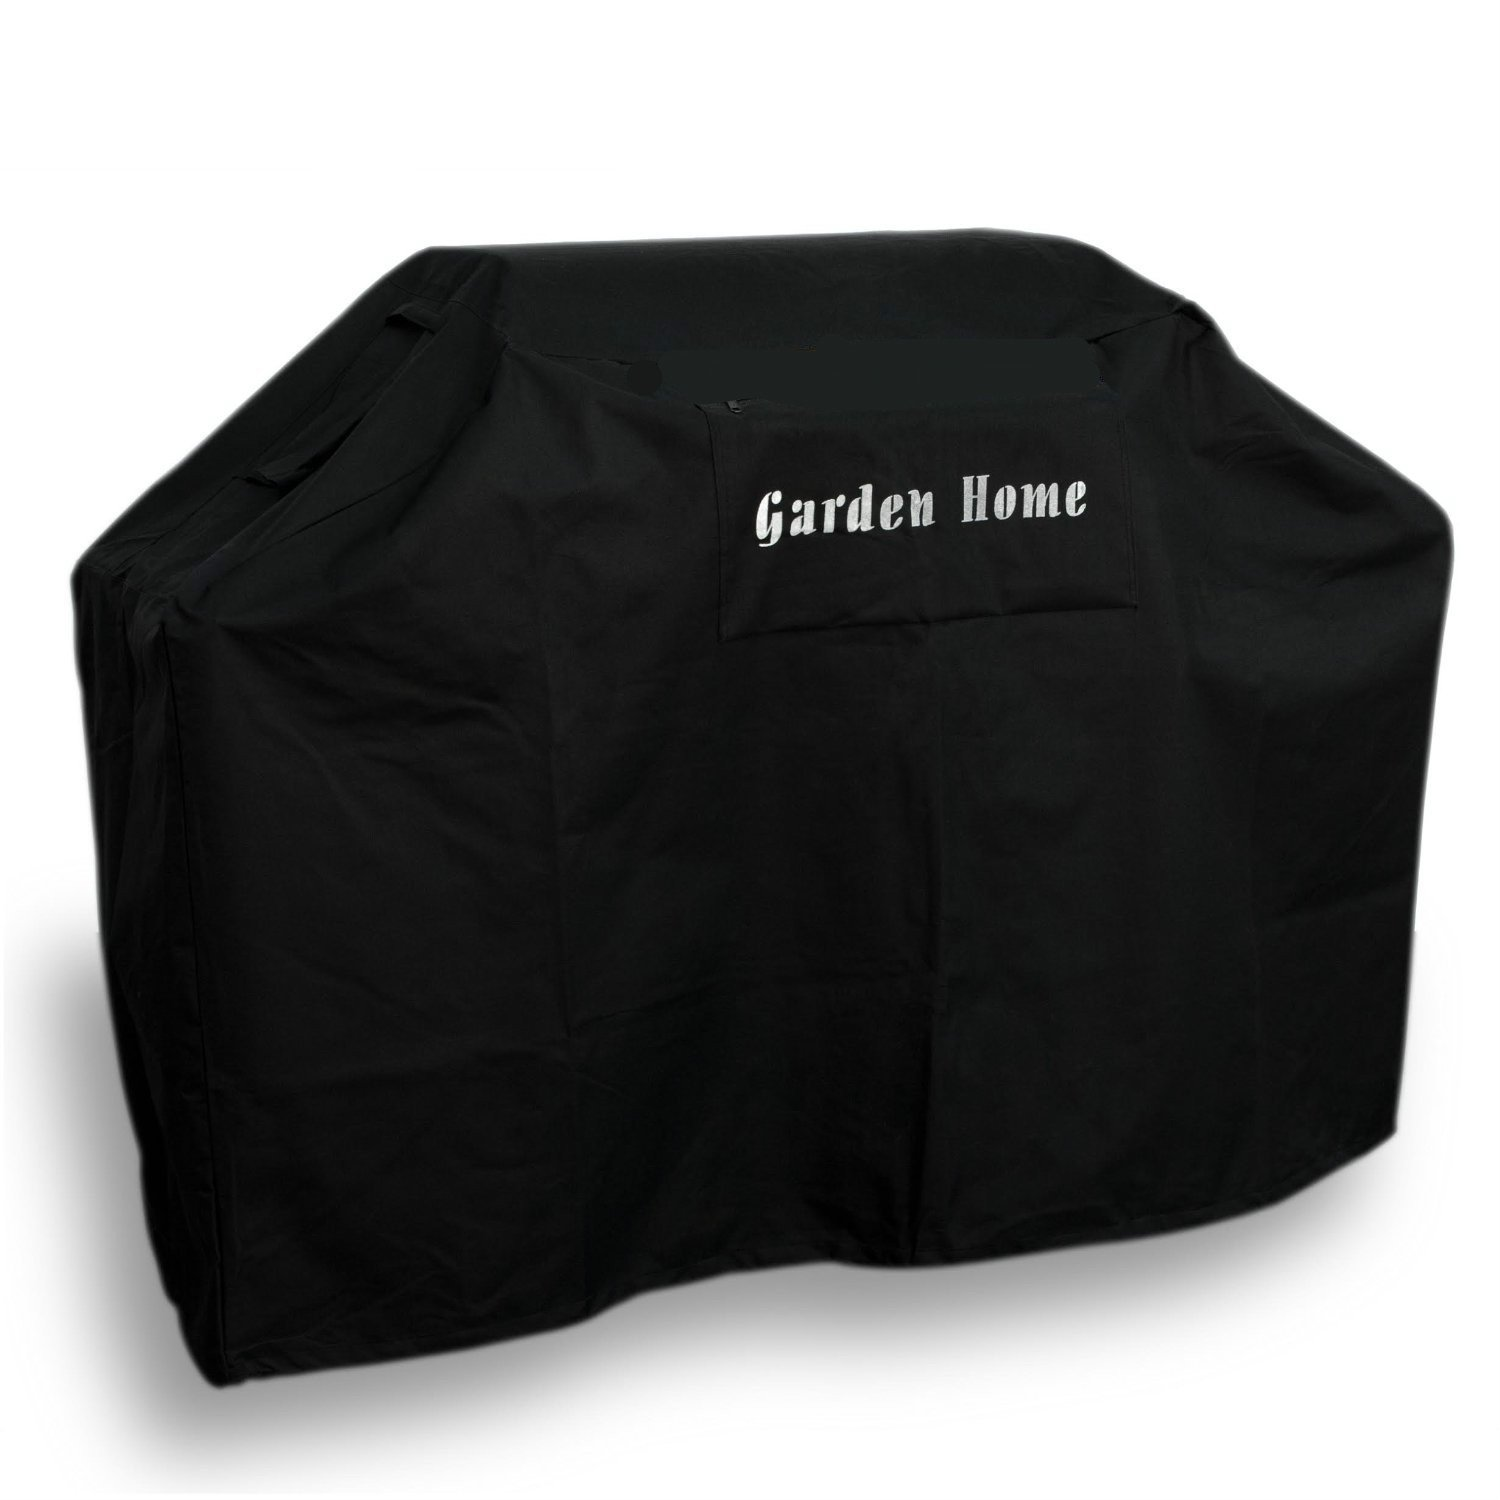 Garden Home Grill Cover (61 INCHES, Black)